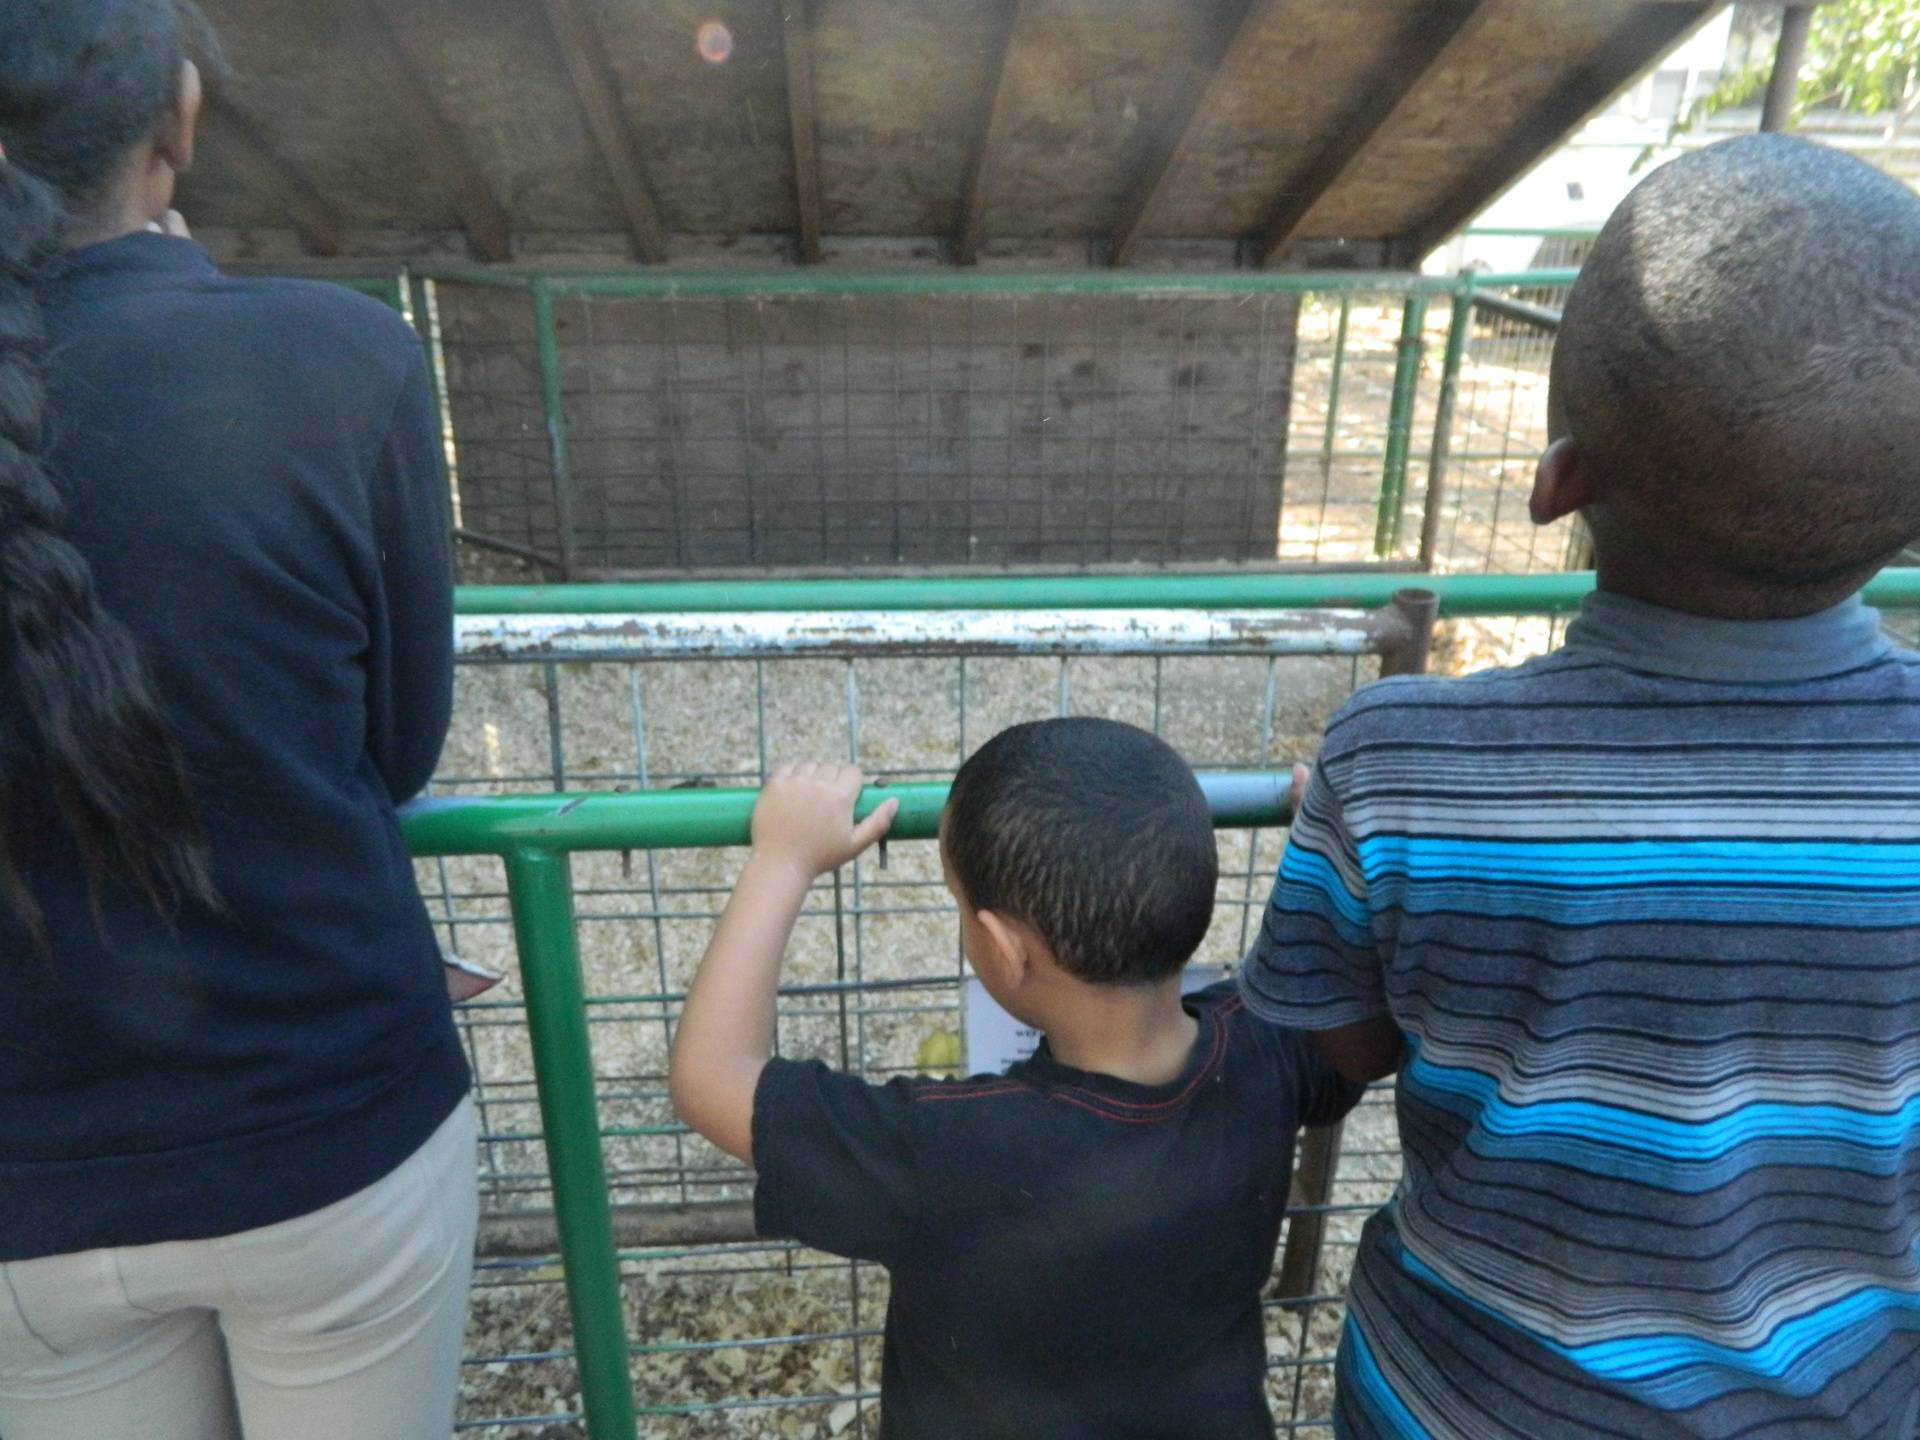 Looking at the Animals